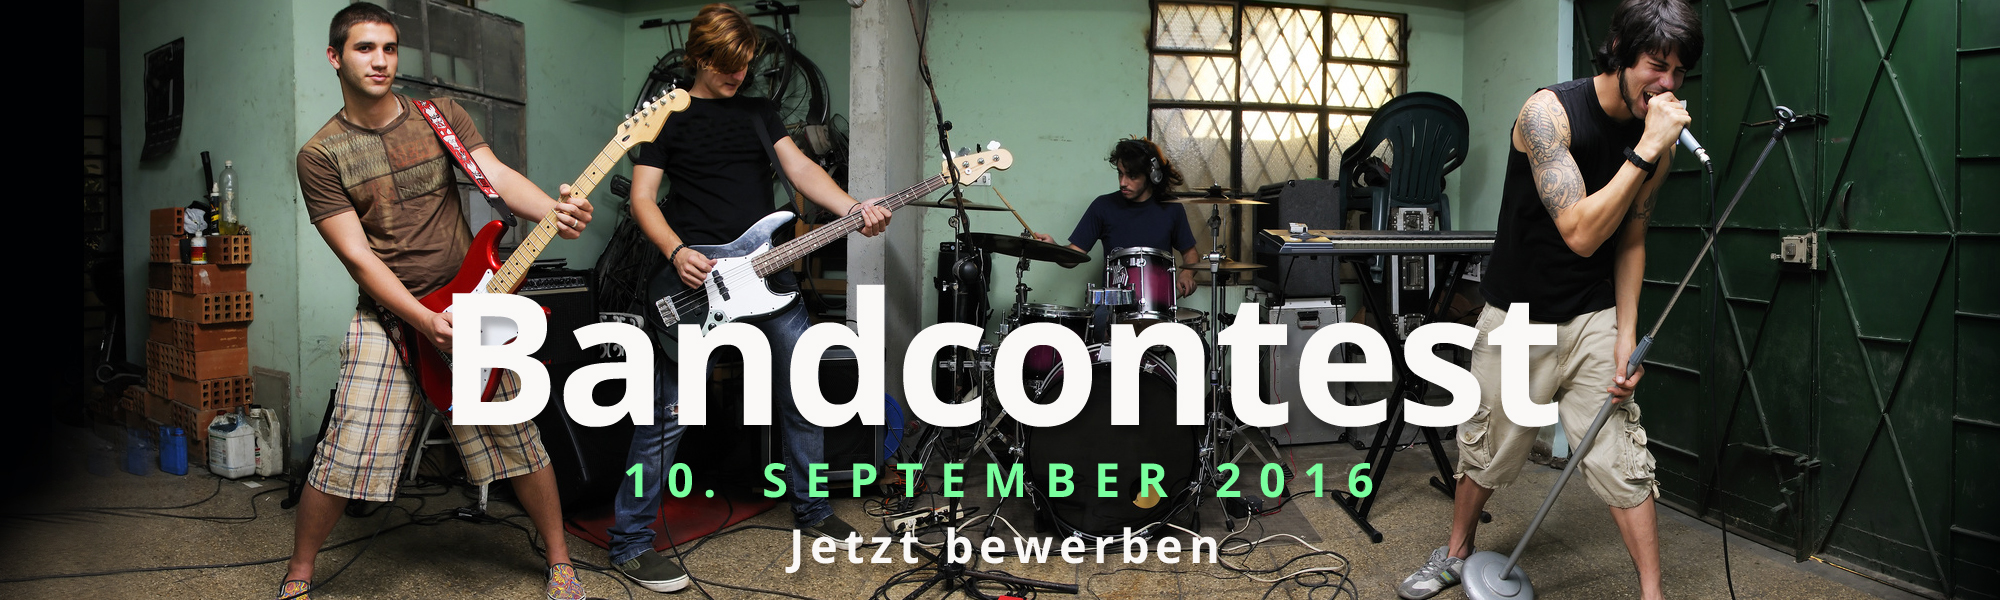 Bandcontest 2016